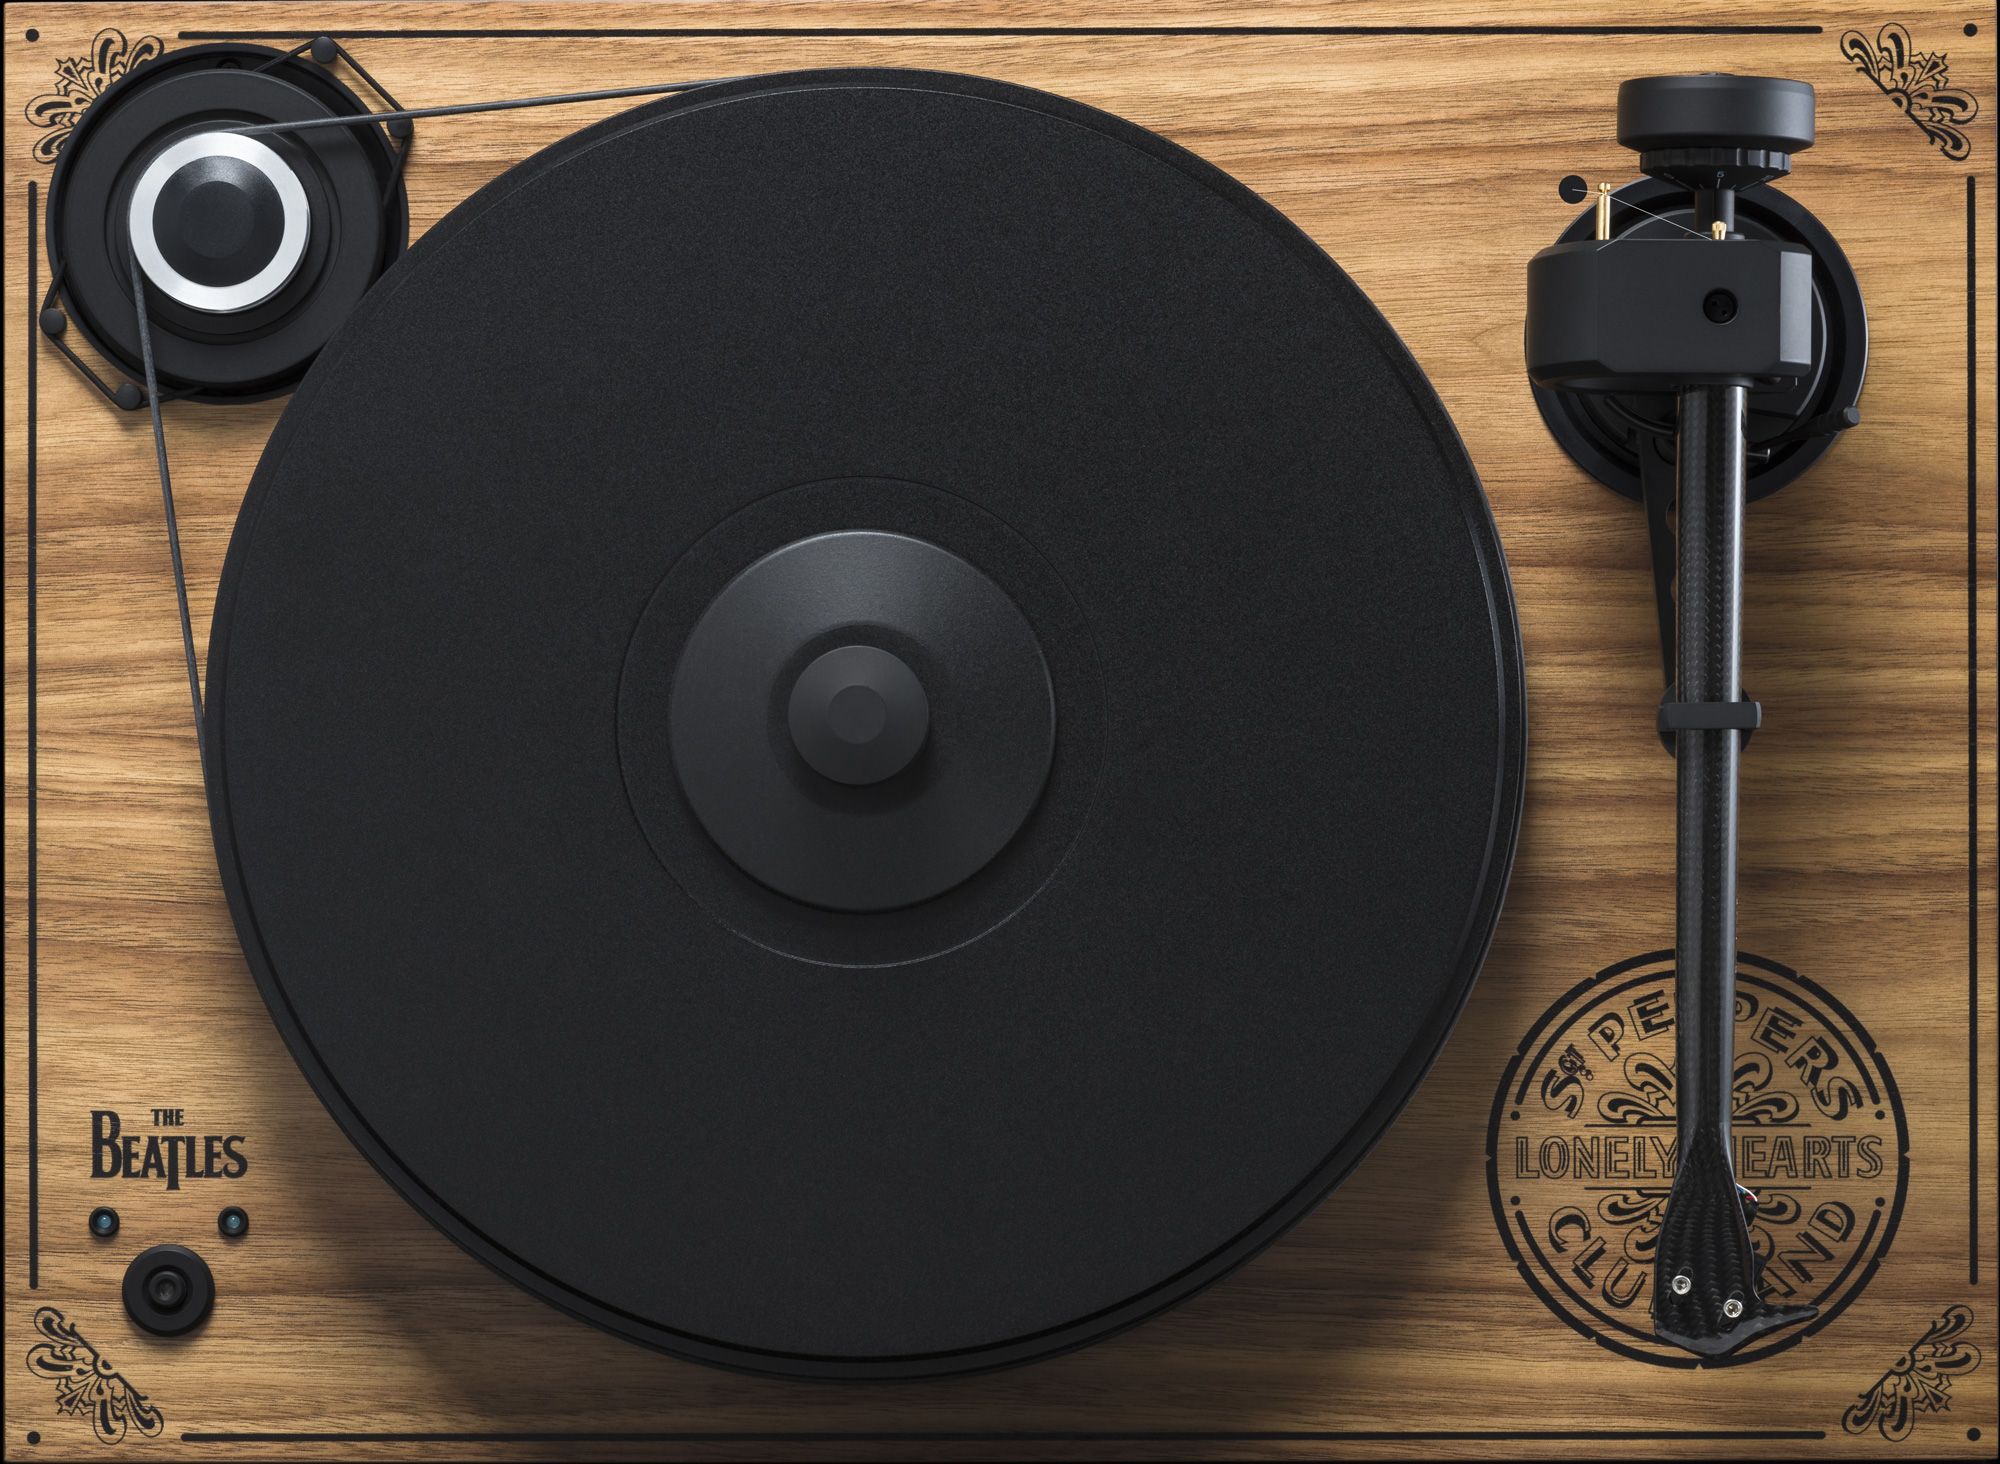 Pro Ject Turntables For The 50th Anniversary Of The